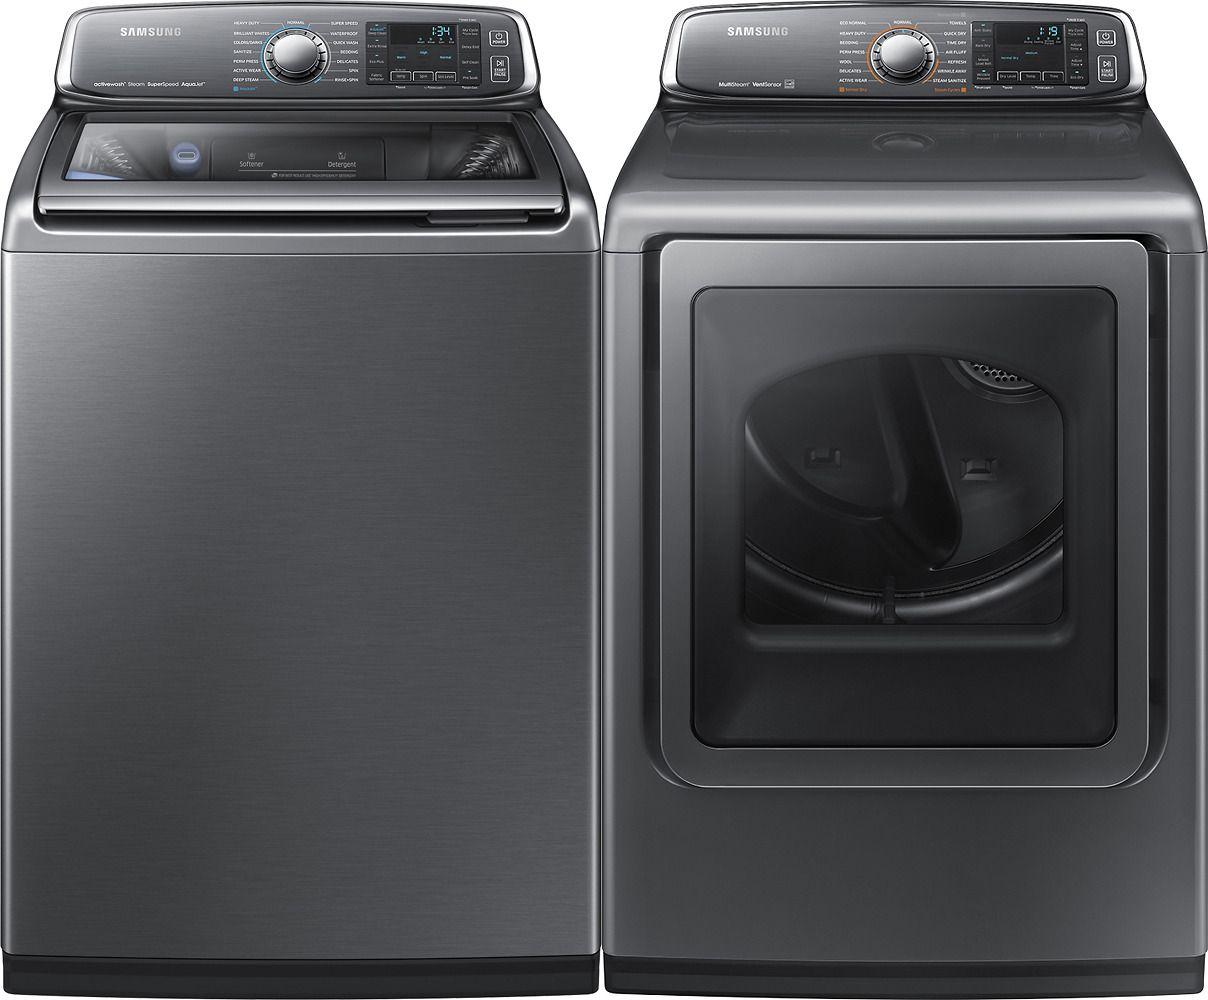 Top Ten Best Quiet Washing Machines 2017 Samsung Washer And Dryer Review  From Best Buy,